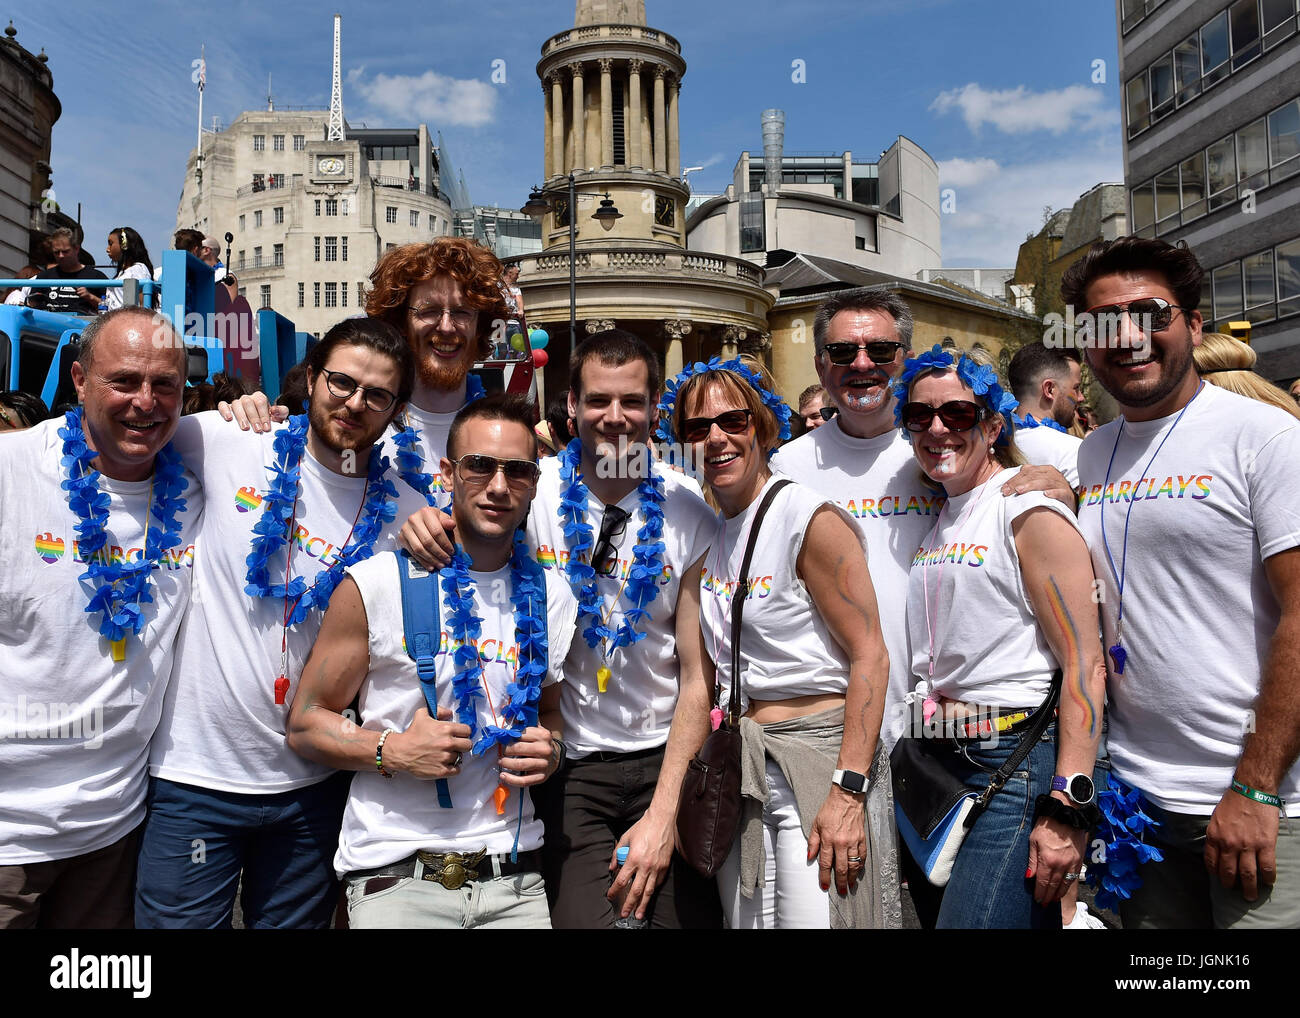 London, UK. 08th July, 2017. Workers at Barclays joined the Pride In London on Saturday. Photo : Taka G Wu Credit: - Stock Image